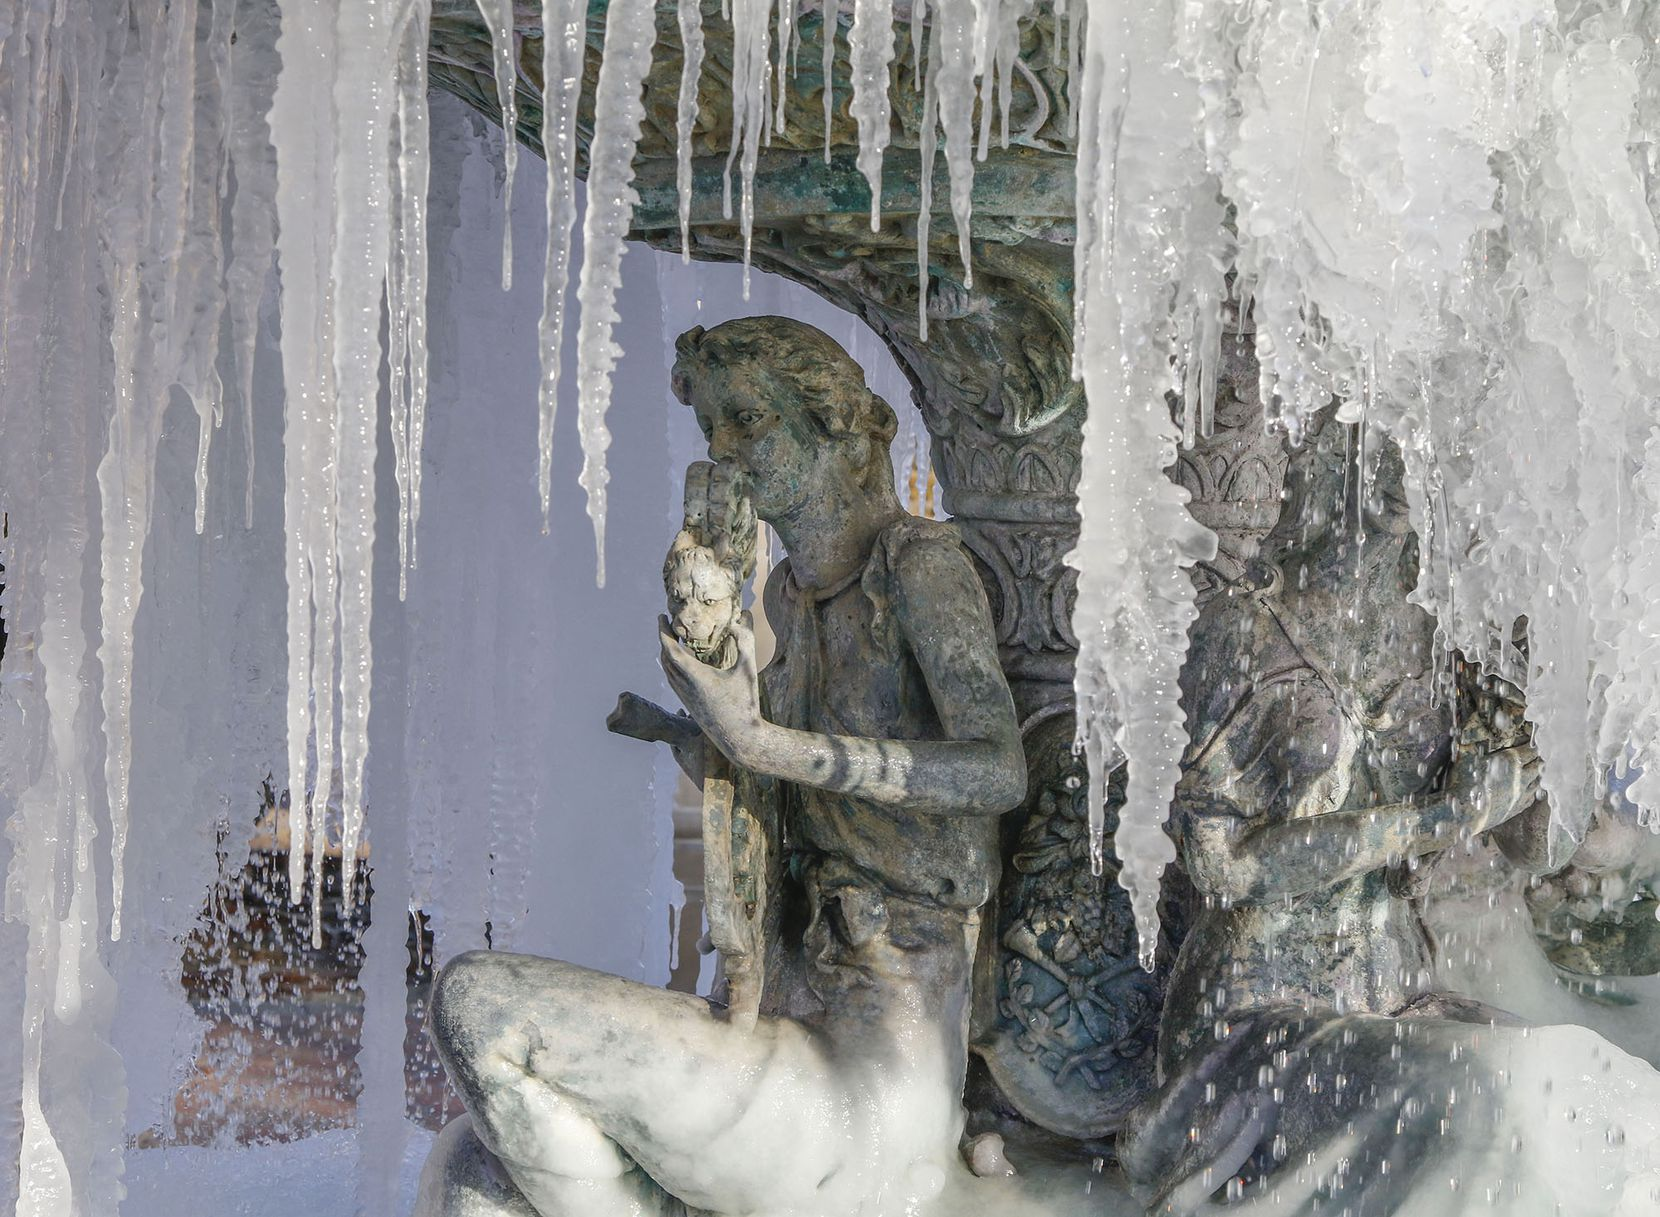 Icicles hang from a fountain at the The Village at Sports Center shopping center in Arlington on Monday.